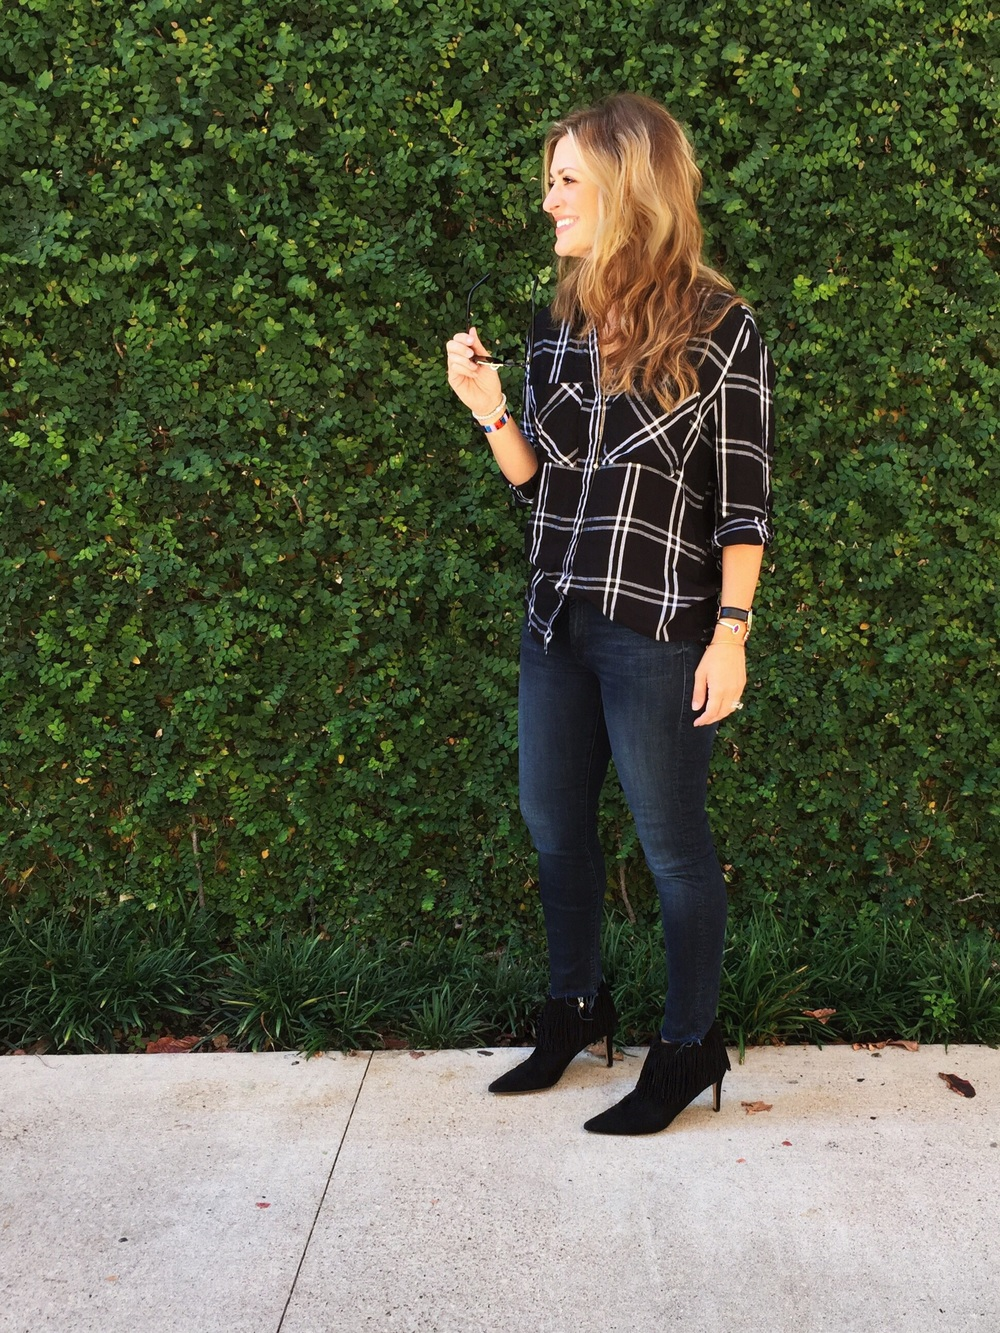 Trying out some Fall trends here with a plaid & fringe combo. Top:  Express  Jeans:  Mother  Boots:  Sam Edelman  (and ON SALE!)